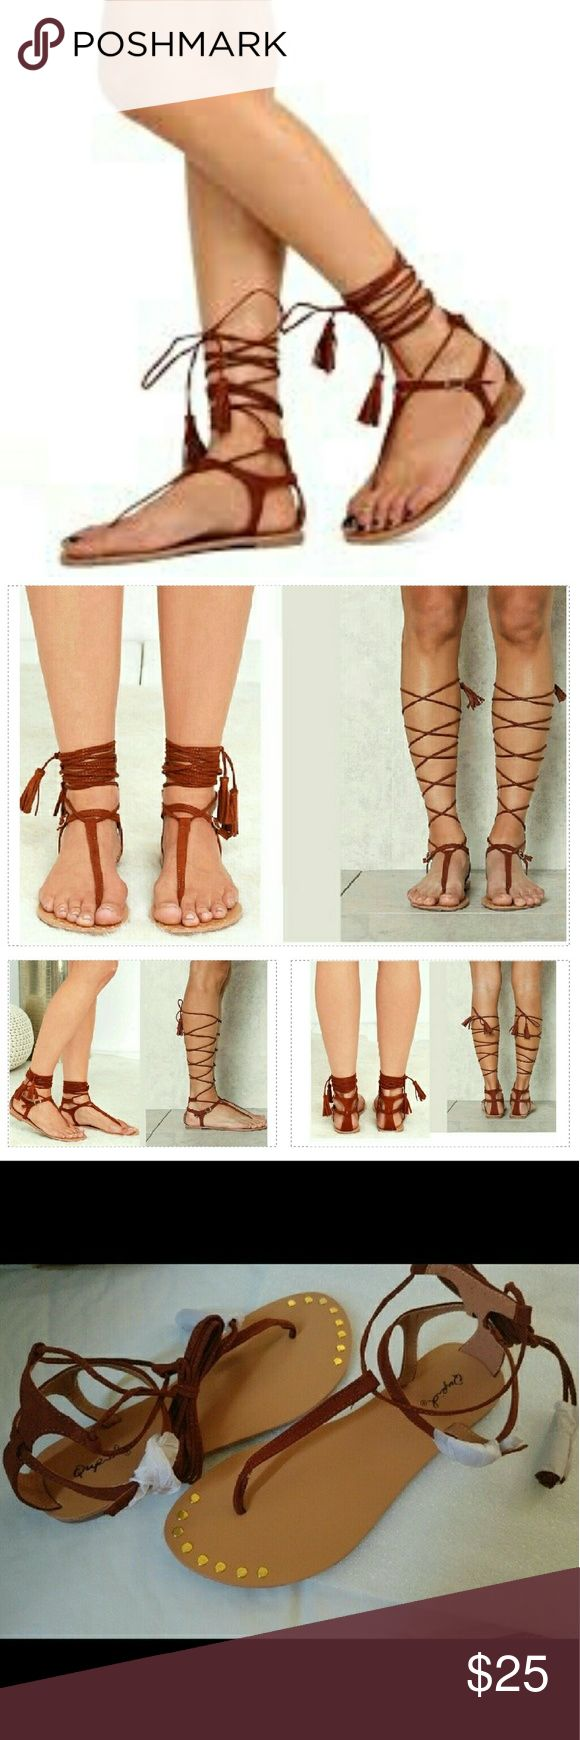 Qupid Lace Up Sandals - whiskey PRICE IS FIRM. NO TRADES. 10% bundle discount.  Lace them at ankle or go all the way up! Chic & minimal thin thong strap with lace up,  tassled-end ties, meets a gold buckling ankle strap. Rounded gold studs along the toes. Man made Suede.  Brand new in box.  Brand: Qupid Color: Whiskey Brown *     M @AngieMarie504 Qupid flat sandals gladiator sandals thong sandals lace up sandals Qupid Shoes Sandals